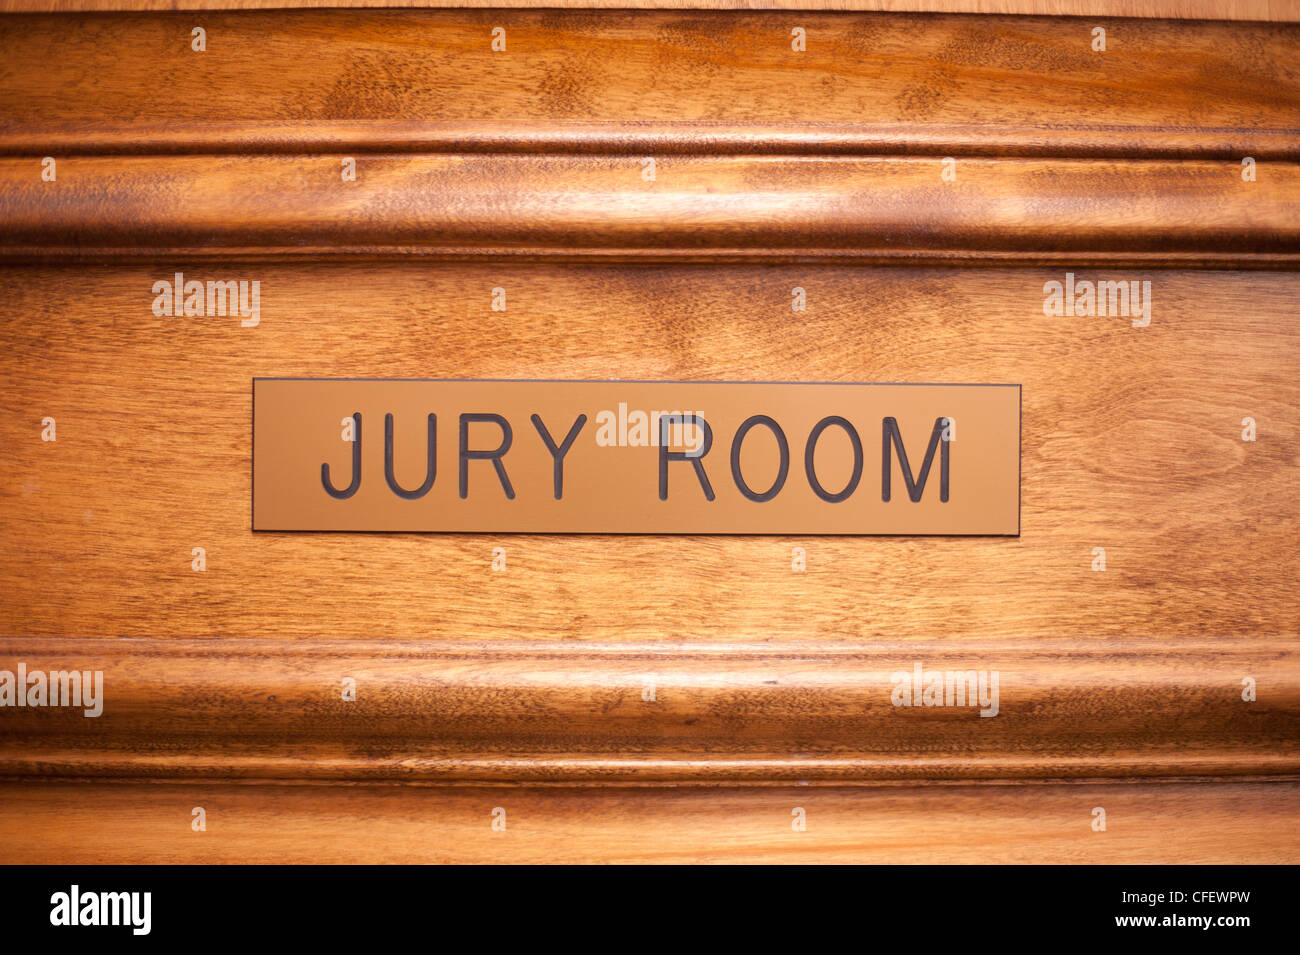 Jury room door in a courthouse. - Stock Image